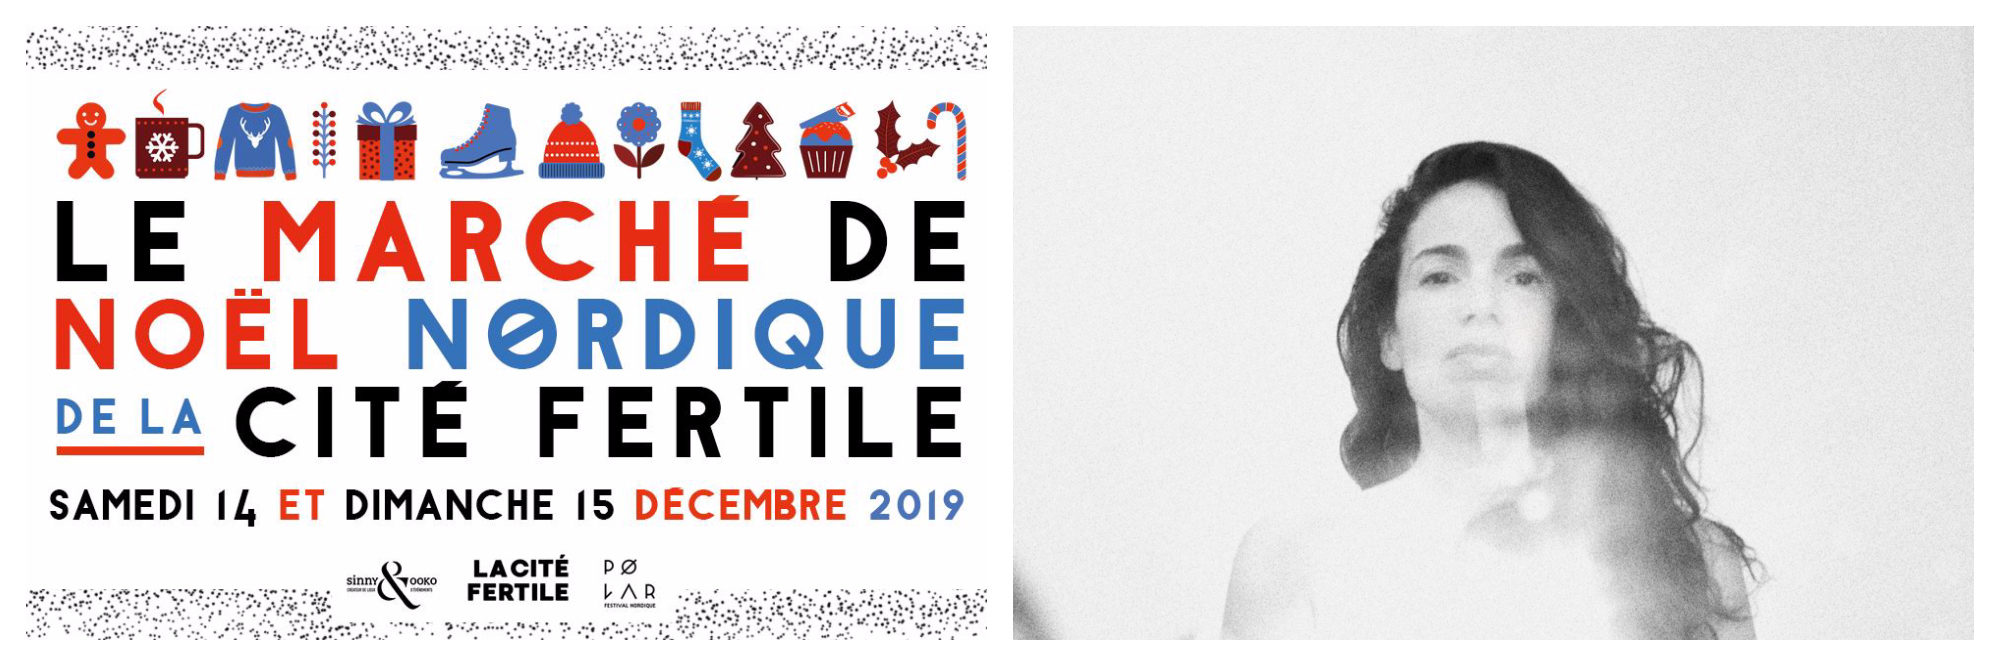 A poster for the Marché de Noel Nordique, a Christmas market in Paris this December (left). A black and white photograph of singer Yael Naim who is performing this December in Paris (right).